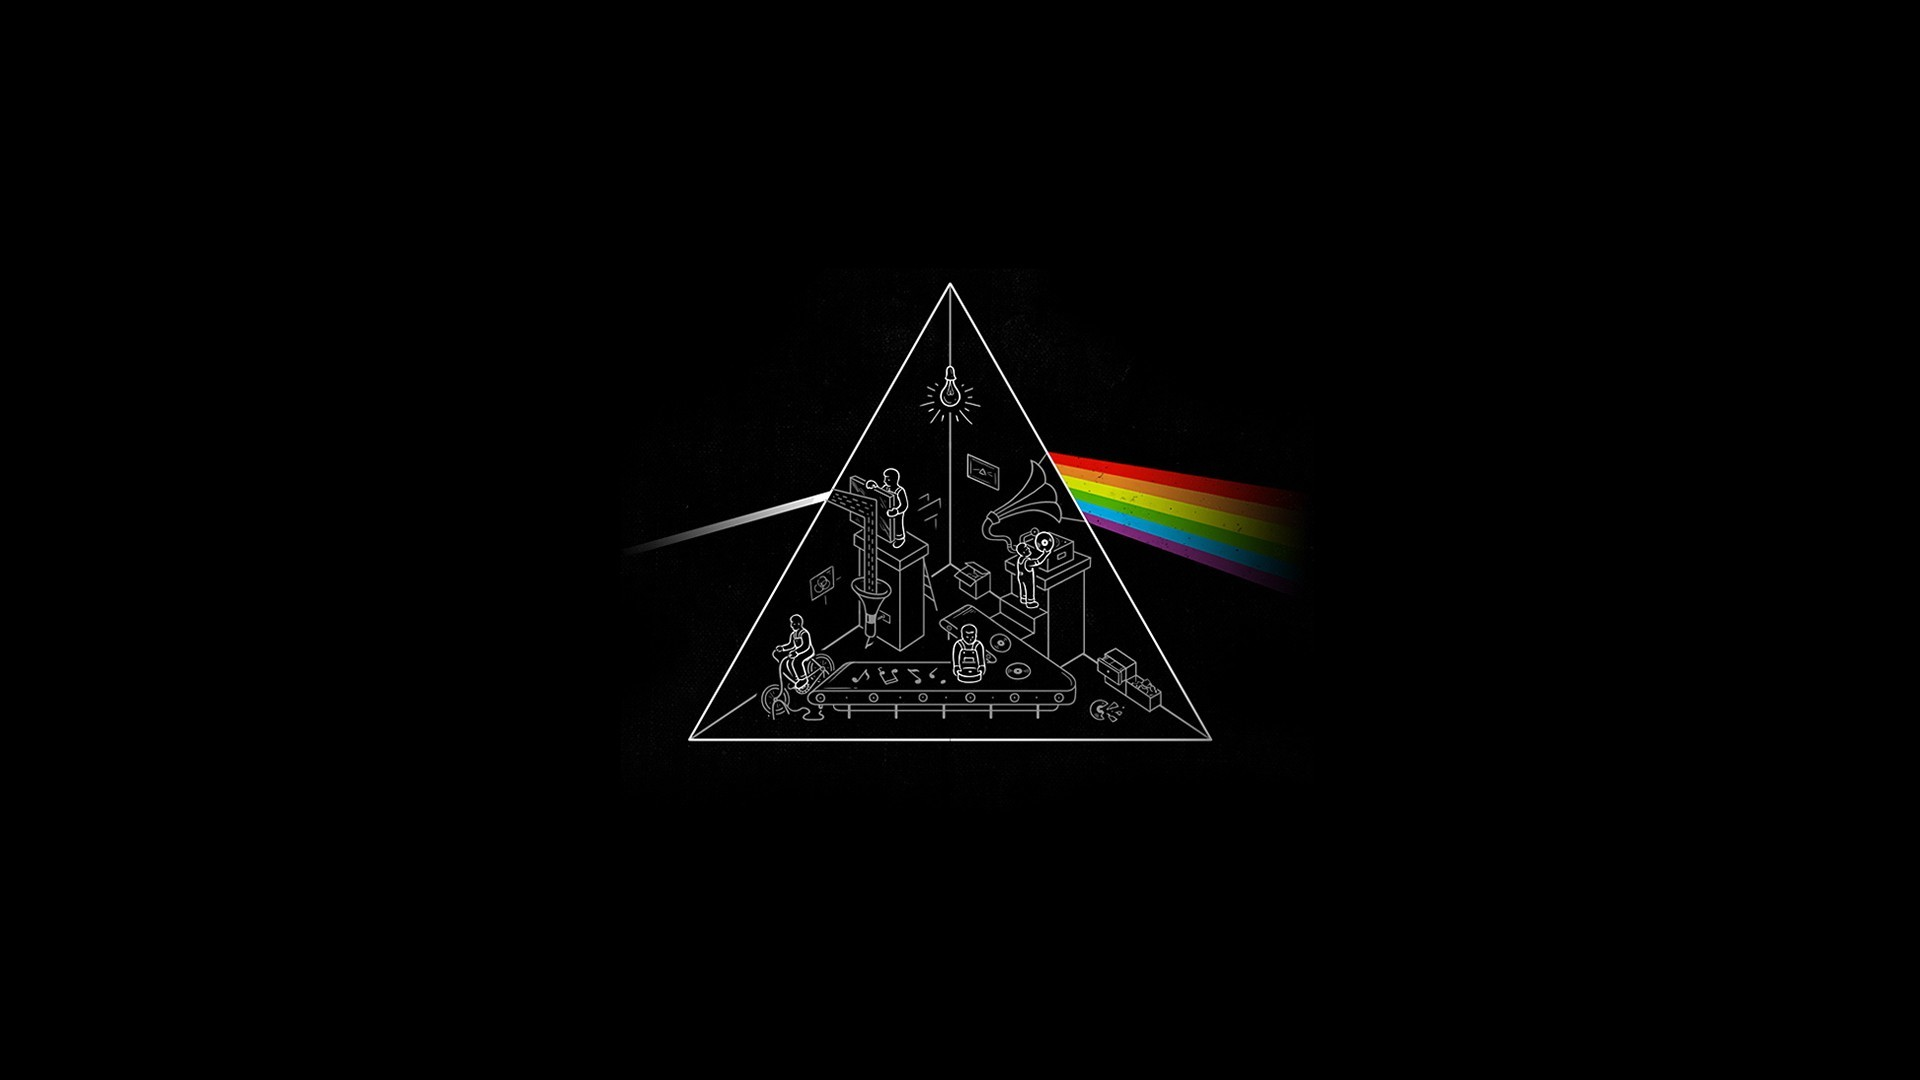 Res: 1920x1080, Pink Floyd hard rock classic retro bands groups album covers logo wallpaper  |  | 26105 | WallpaperUP